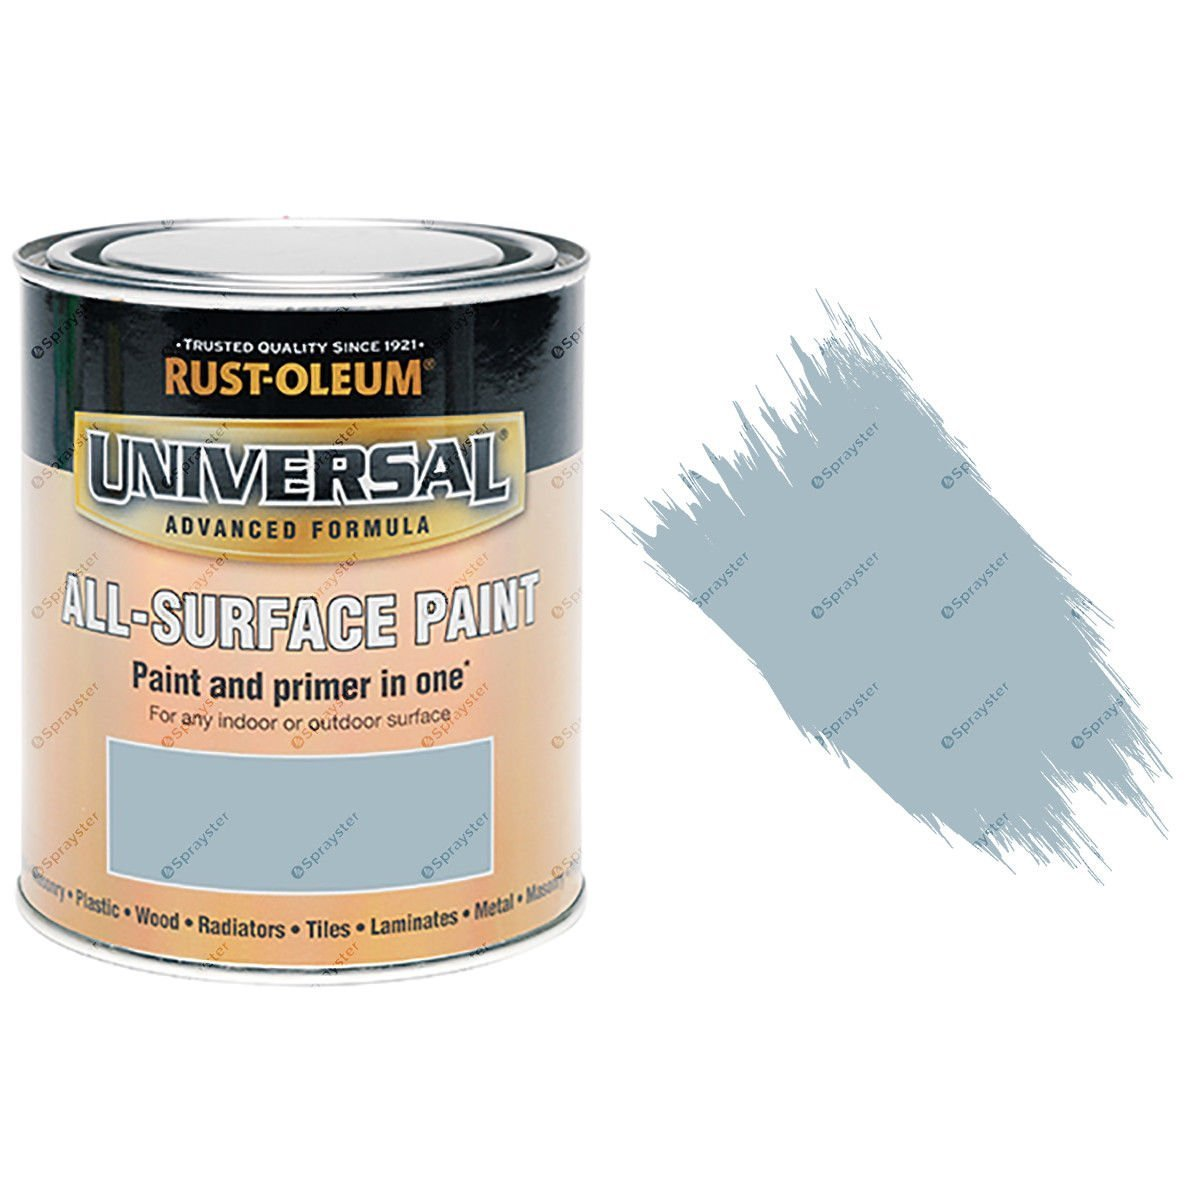 Rust-Oleum Universal Lagoon Blue Satin All-Surface Brush Paint 750ml